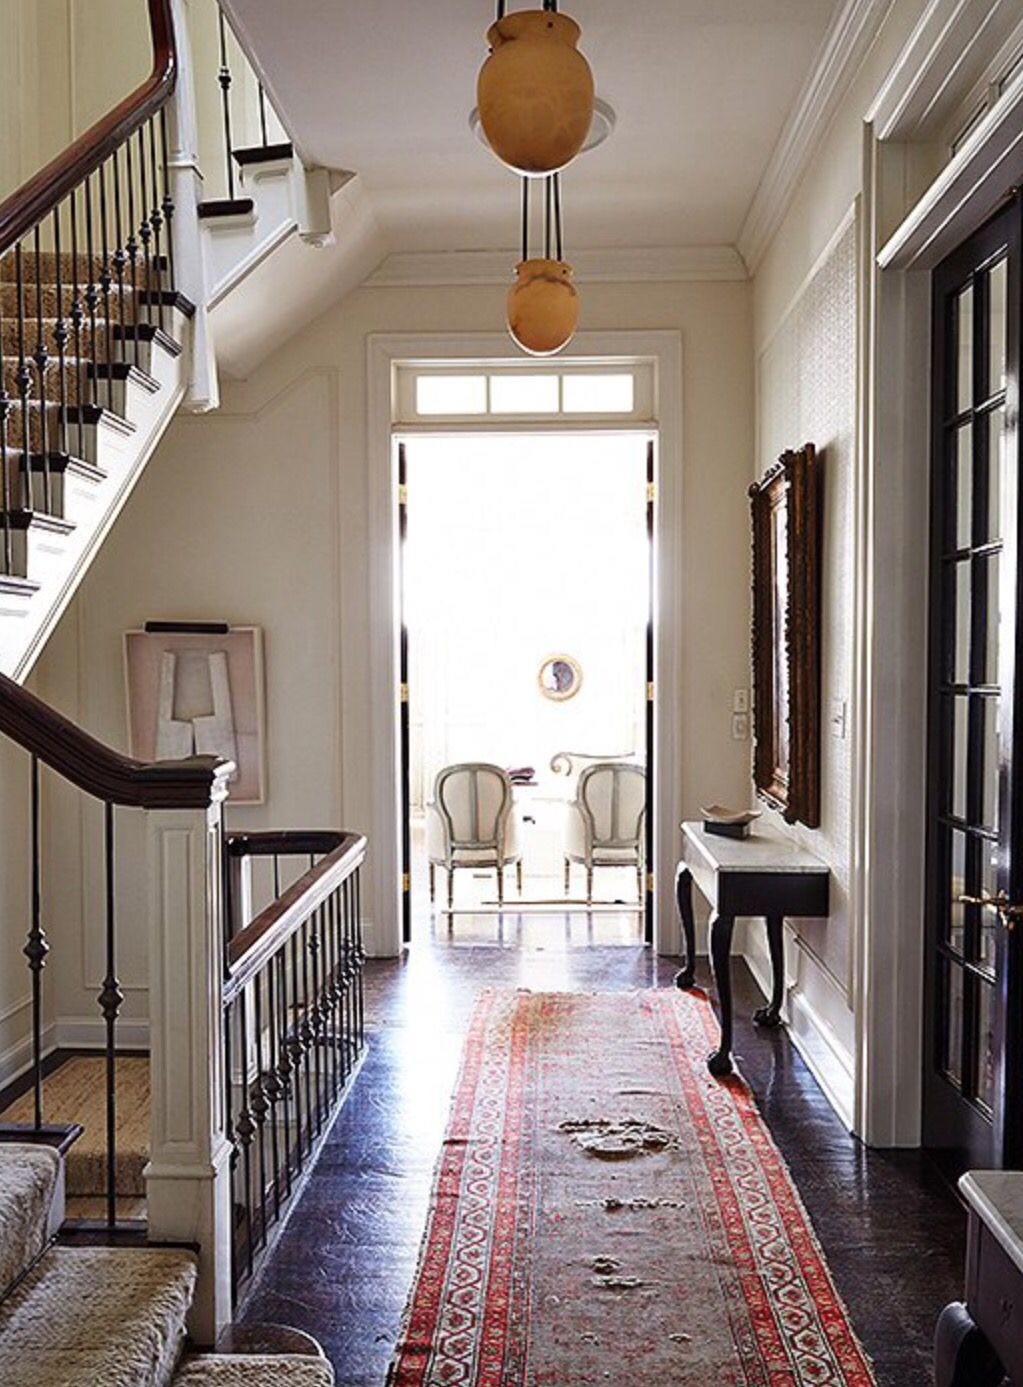 Attractive Home Tour: Darryl Carteru0027s Sophisticated D.